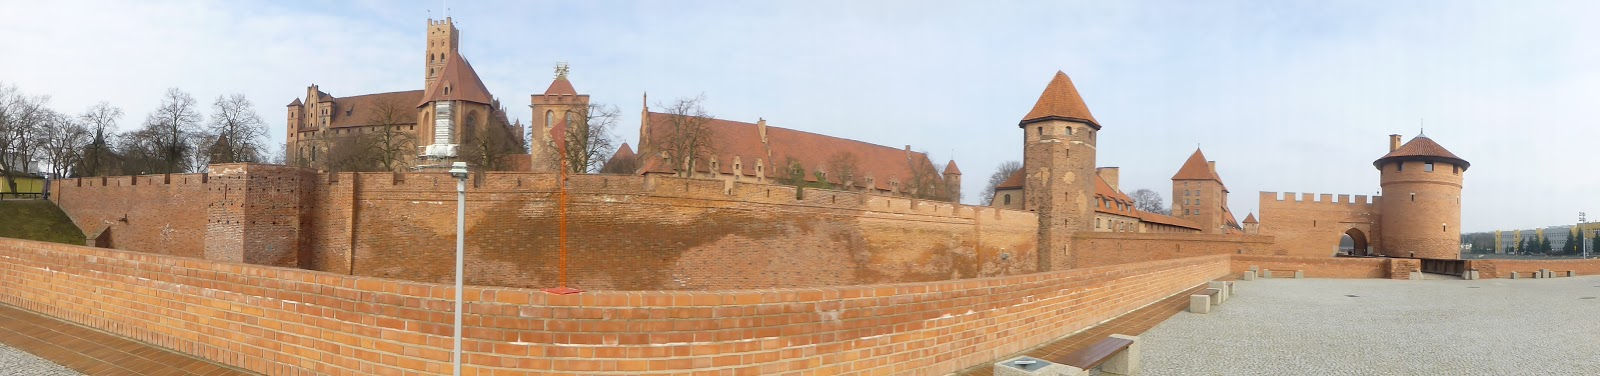 the castle was completed in 1406 and was the largest brick castle in the world the teutonic knights were a german roman catholic religious order of